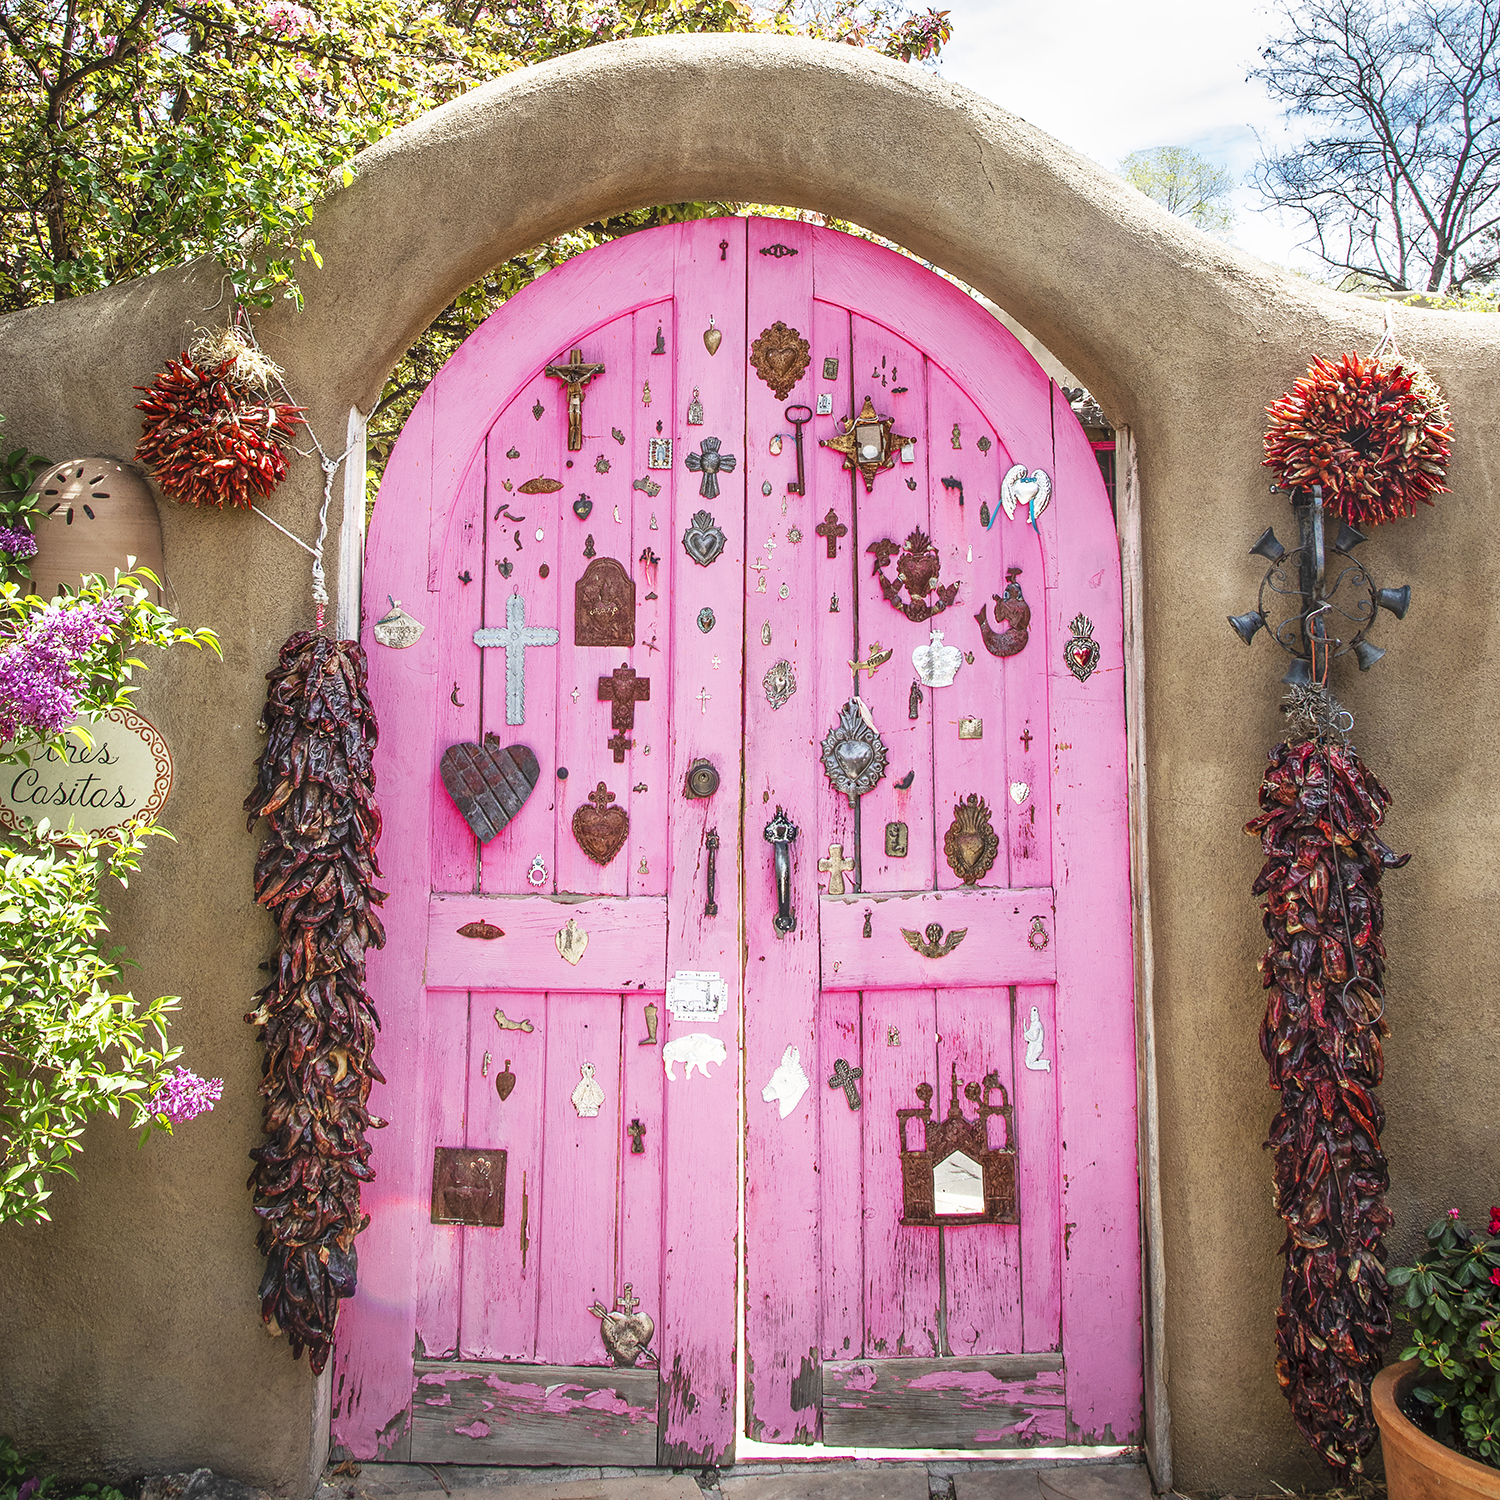 The Pink Gate - Santa Fe, NM